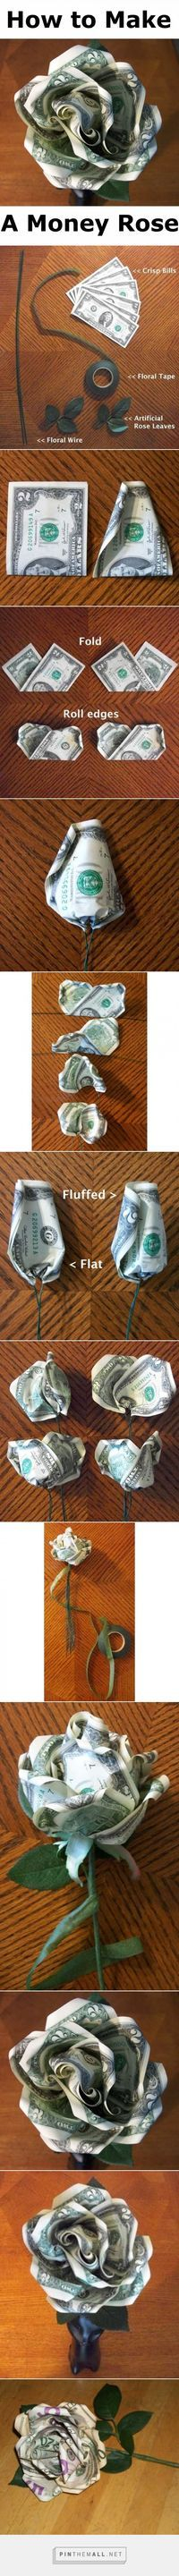 How to Make a Money Rose... - a grouped images picture